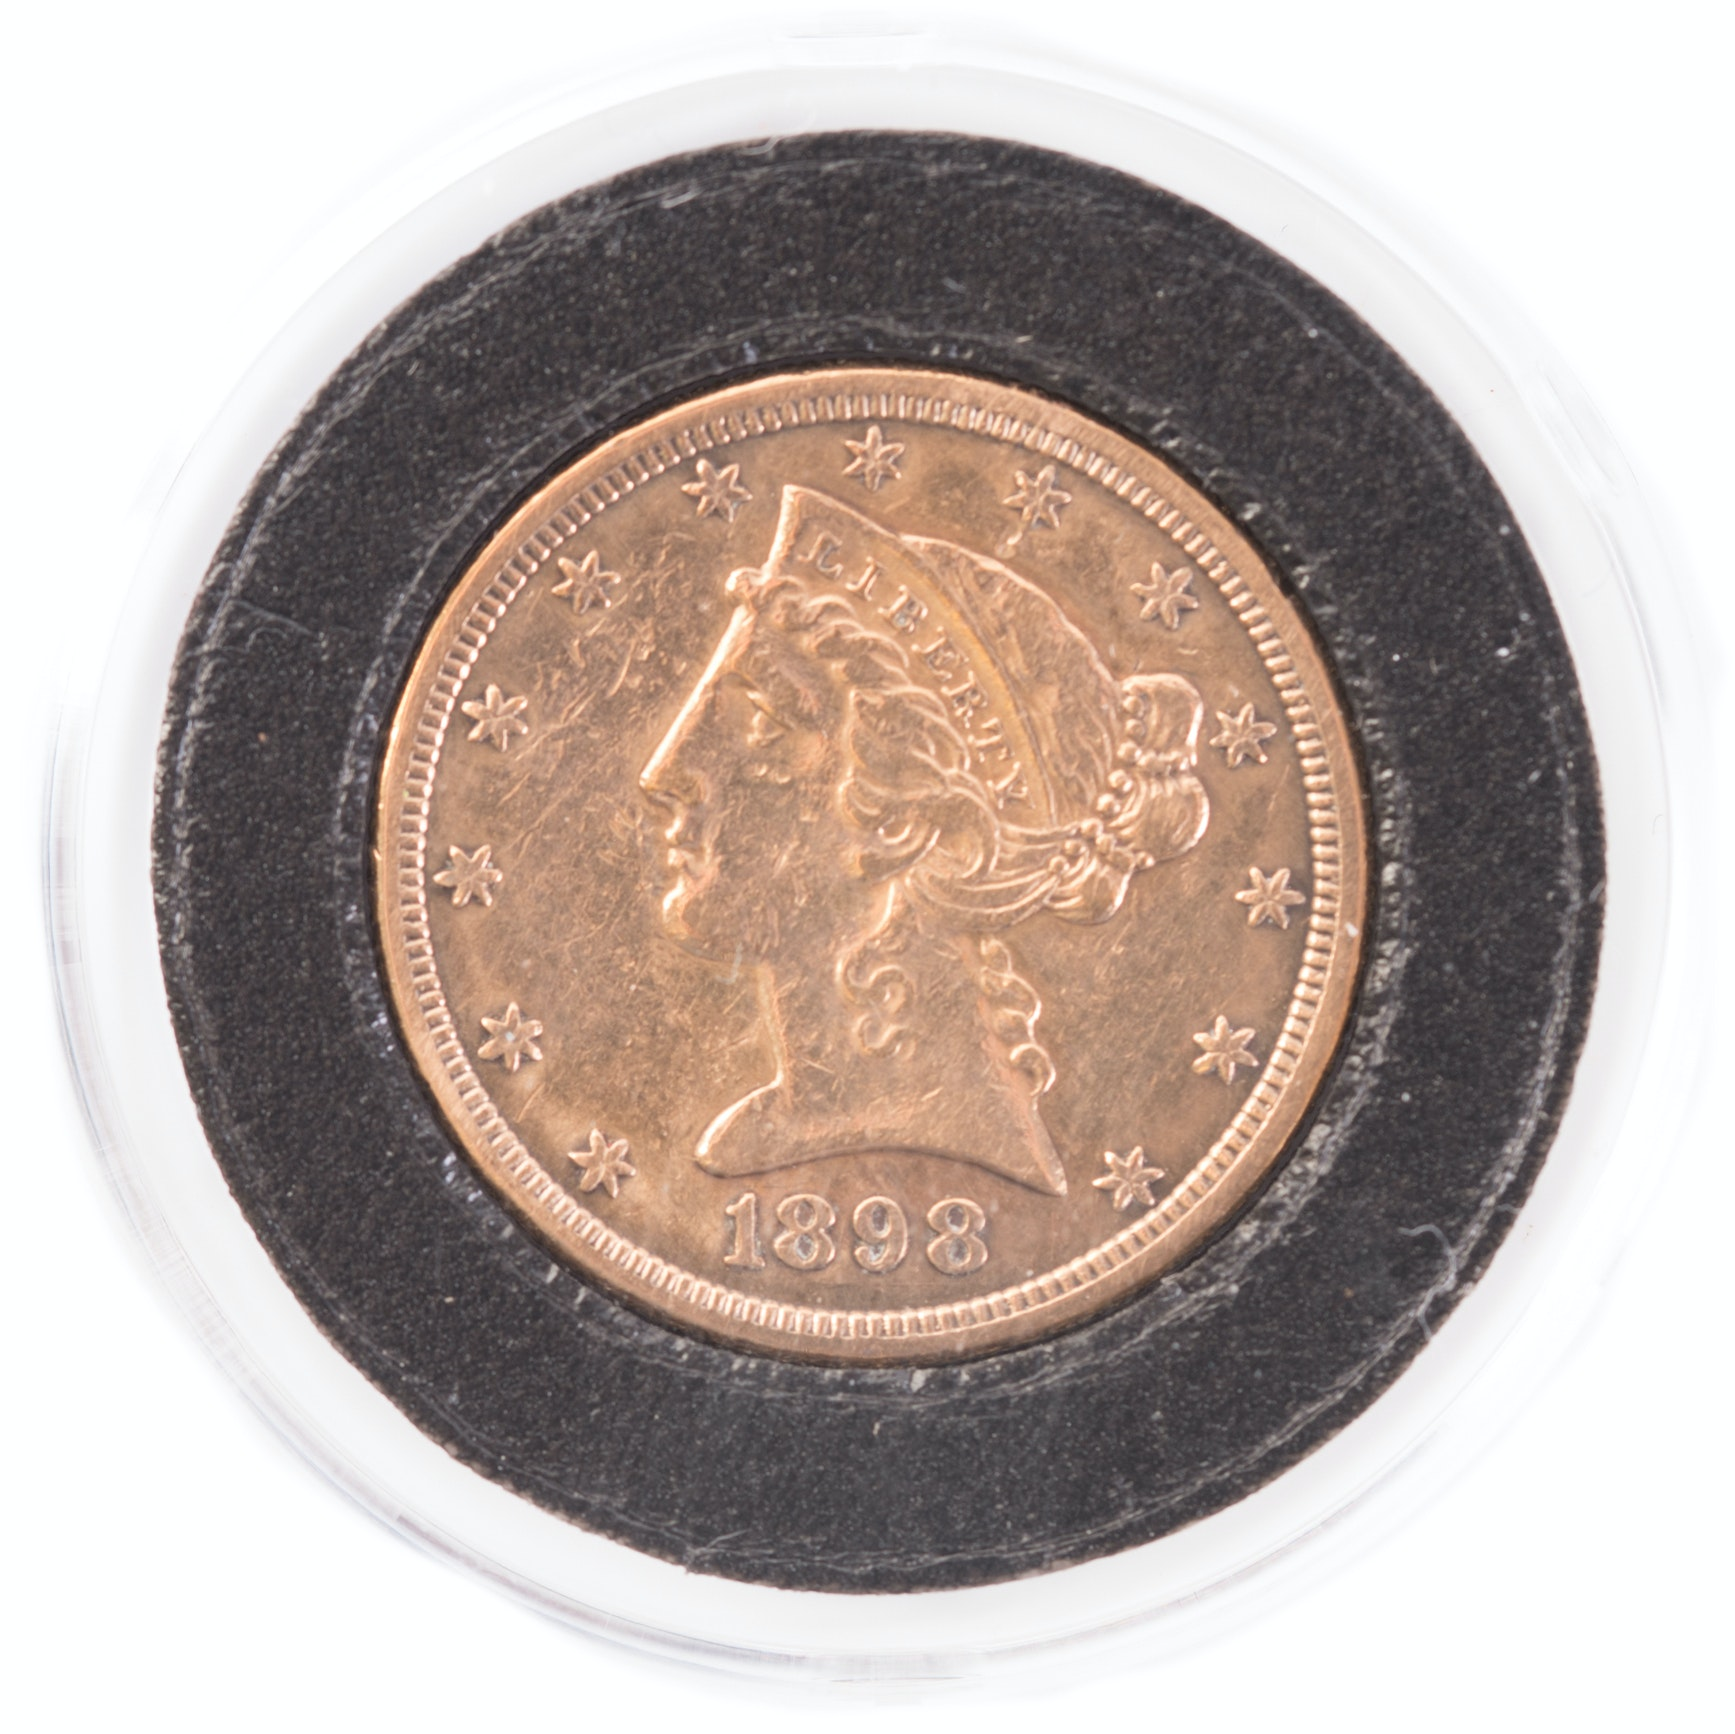 1898 S Liberty Head $5 Gold Coin